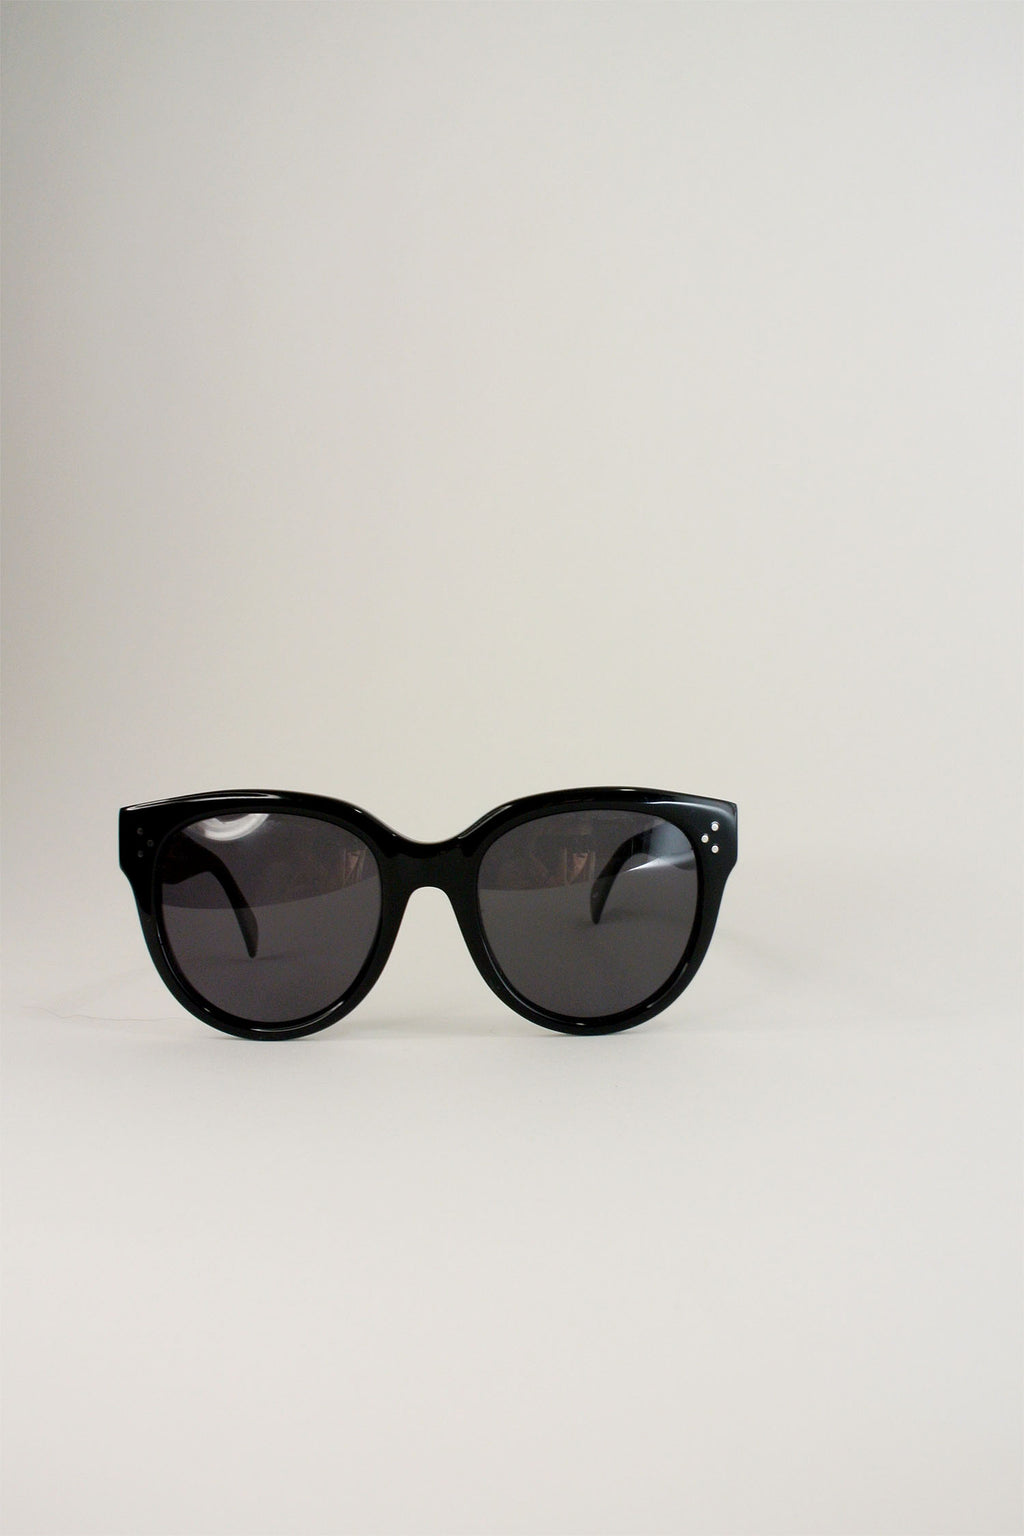 Celine AUDREY Sunglasses CL 41755 Polarized 807/3H